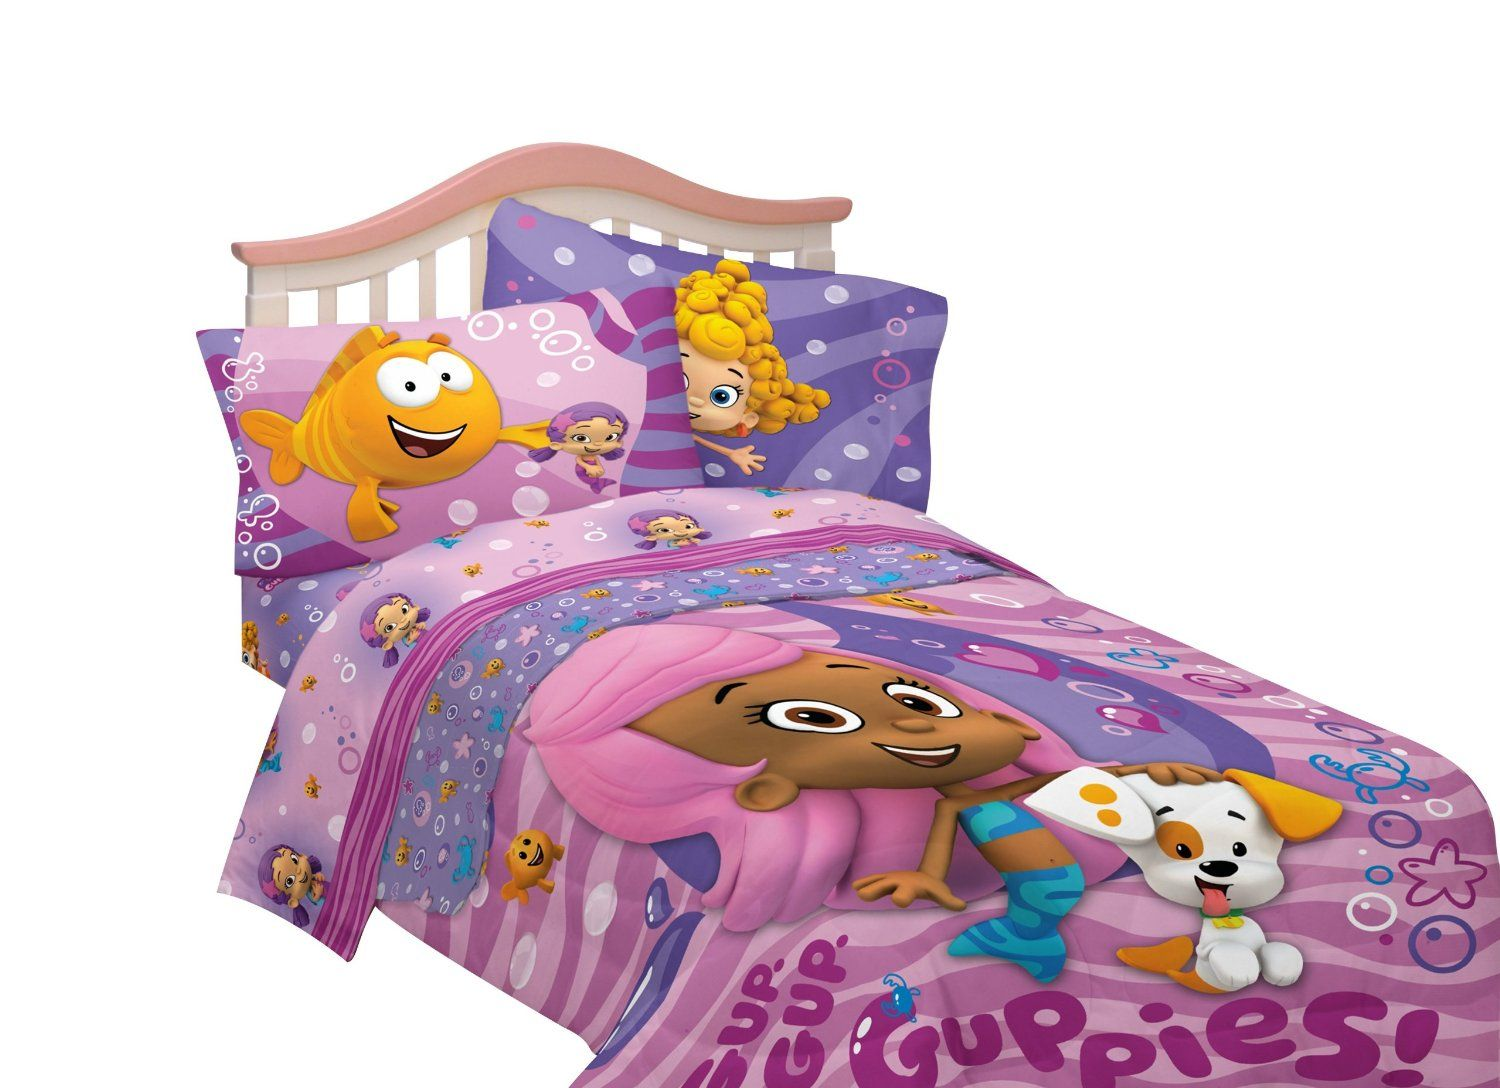 Bubble Guppies Bedding | Bubble fun, Comforters, Bed ...